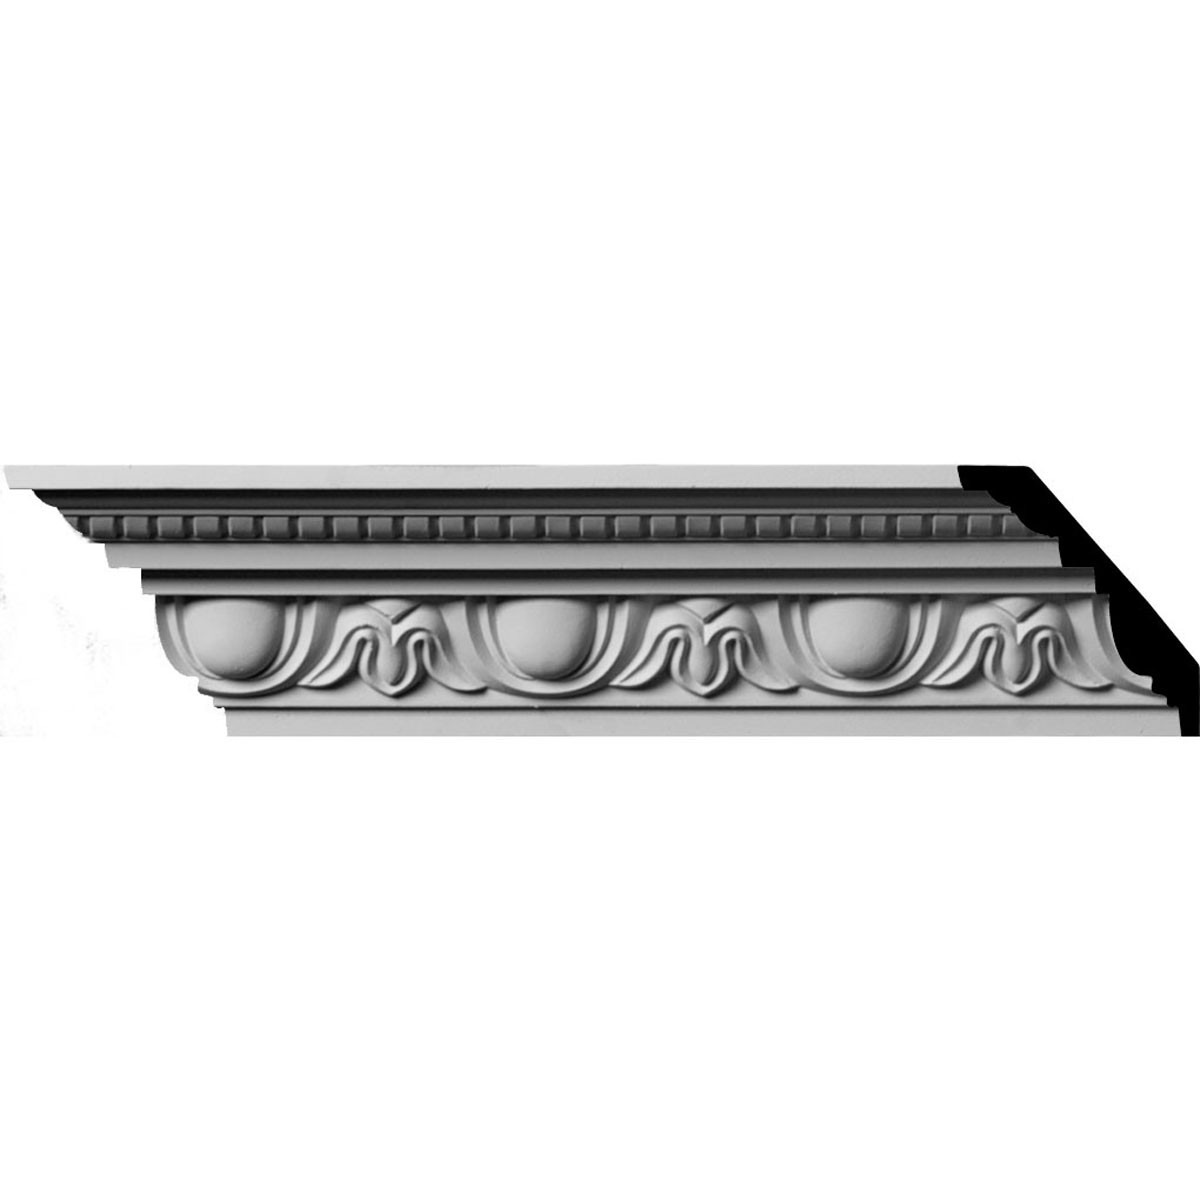 """EM-MLD03X02X04TR - 3 1/4""""H x 2 3/4""""P x 4 3/8""""F x 96""""L, (3 7/8"""" Repeat) Traditional Egg & Dart with Beads Crown Moulding"""